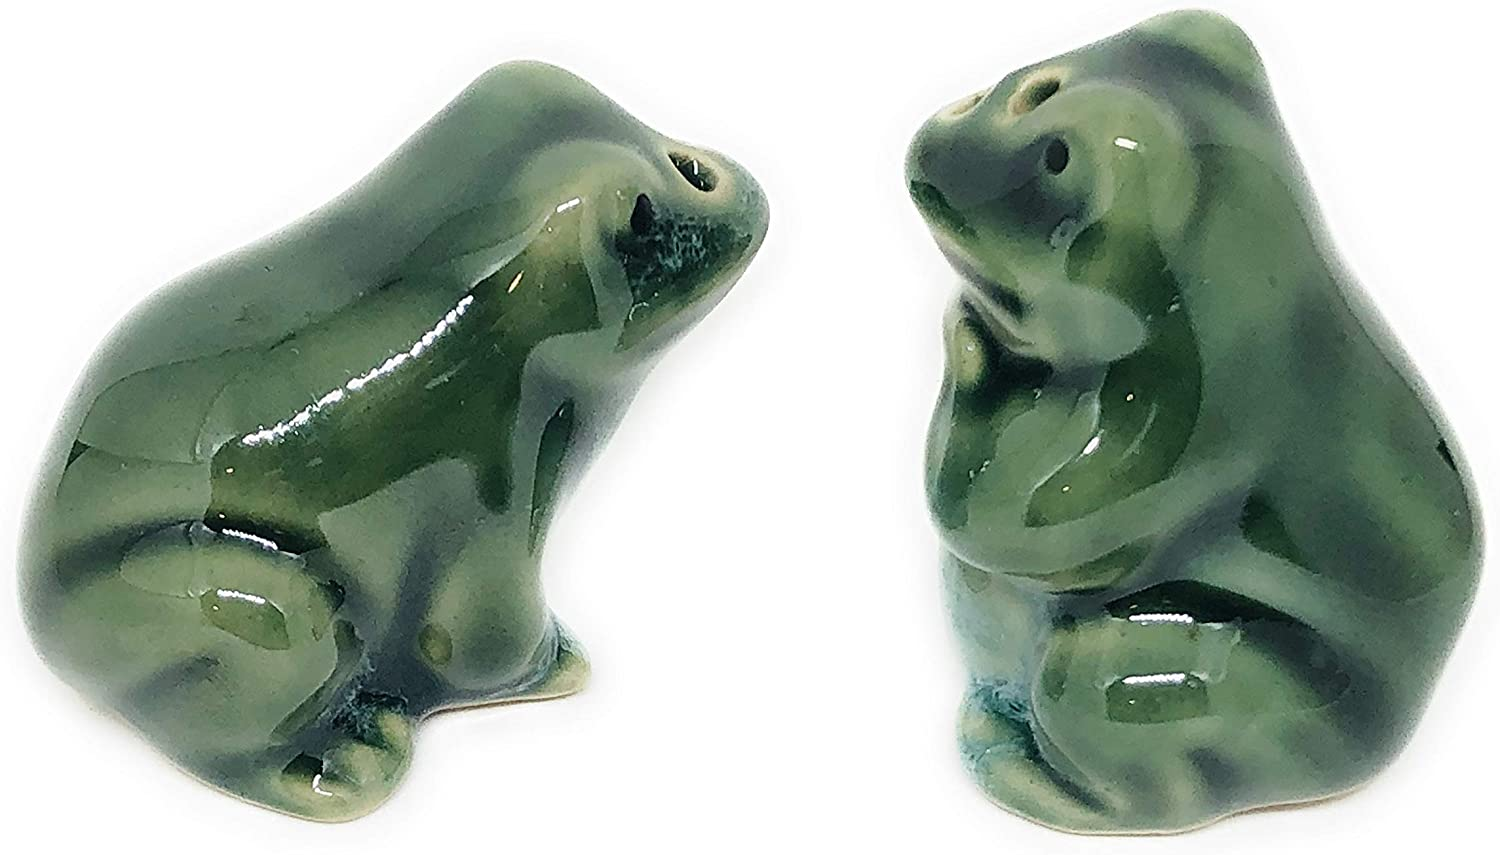 Mini Green Frogs Ceramic Salt & Pepper Shakers - 2-pc Set - Fun Kitchen Accessories - Unique Novelty Table Decor - Cute and Collectible Shaker Set, Makes a Great Gift! Perfect for the Lake Cabin!